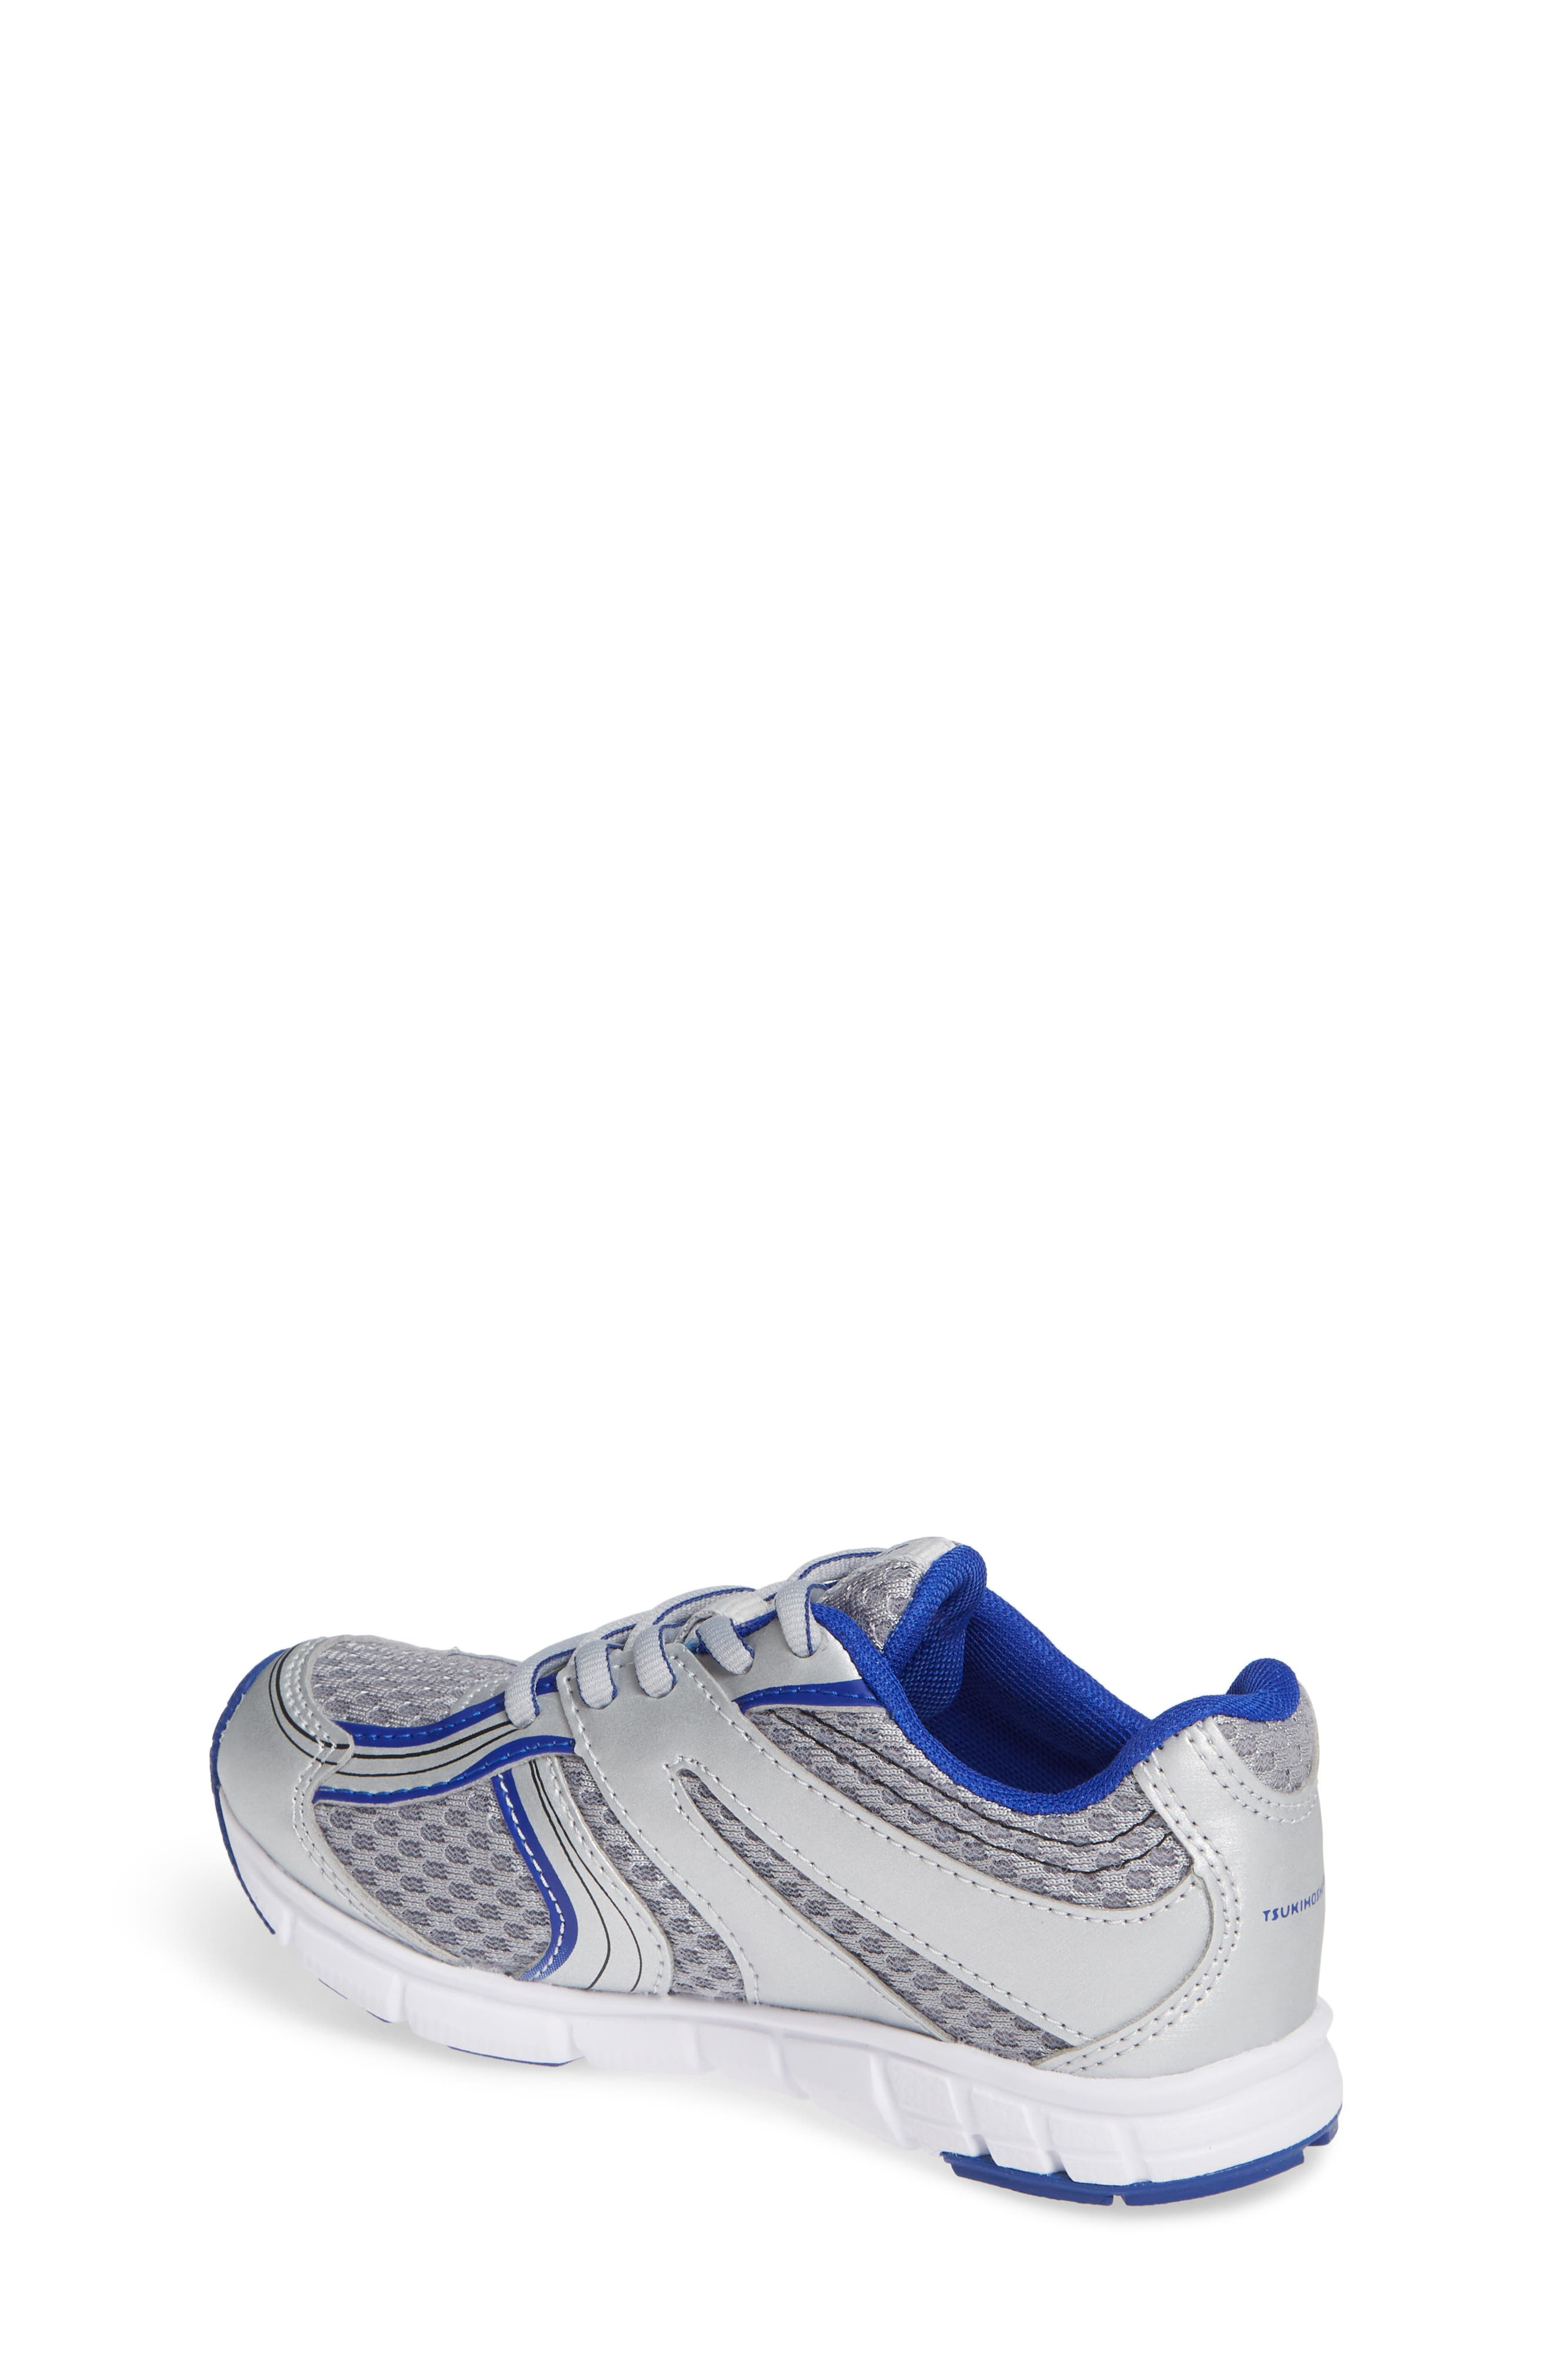 Dash Washable Sneaker,                             Alternate thumbnail 2, color,                             SILVER/ ROYAL